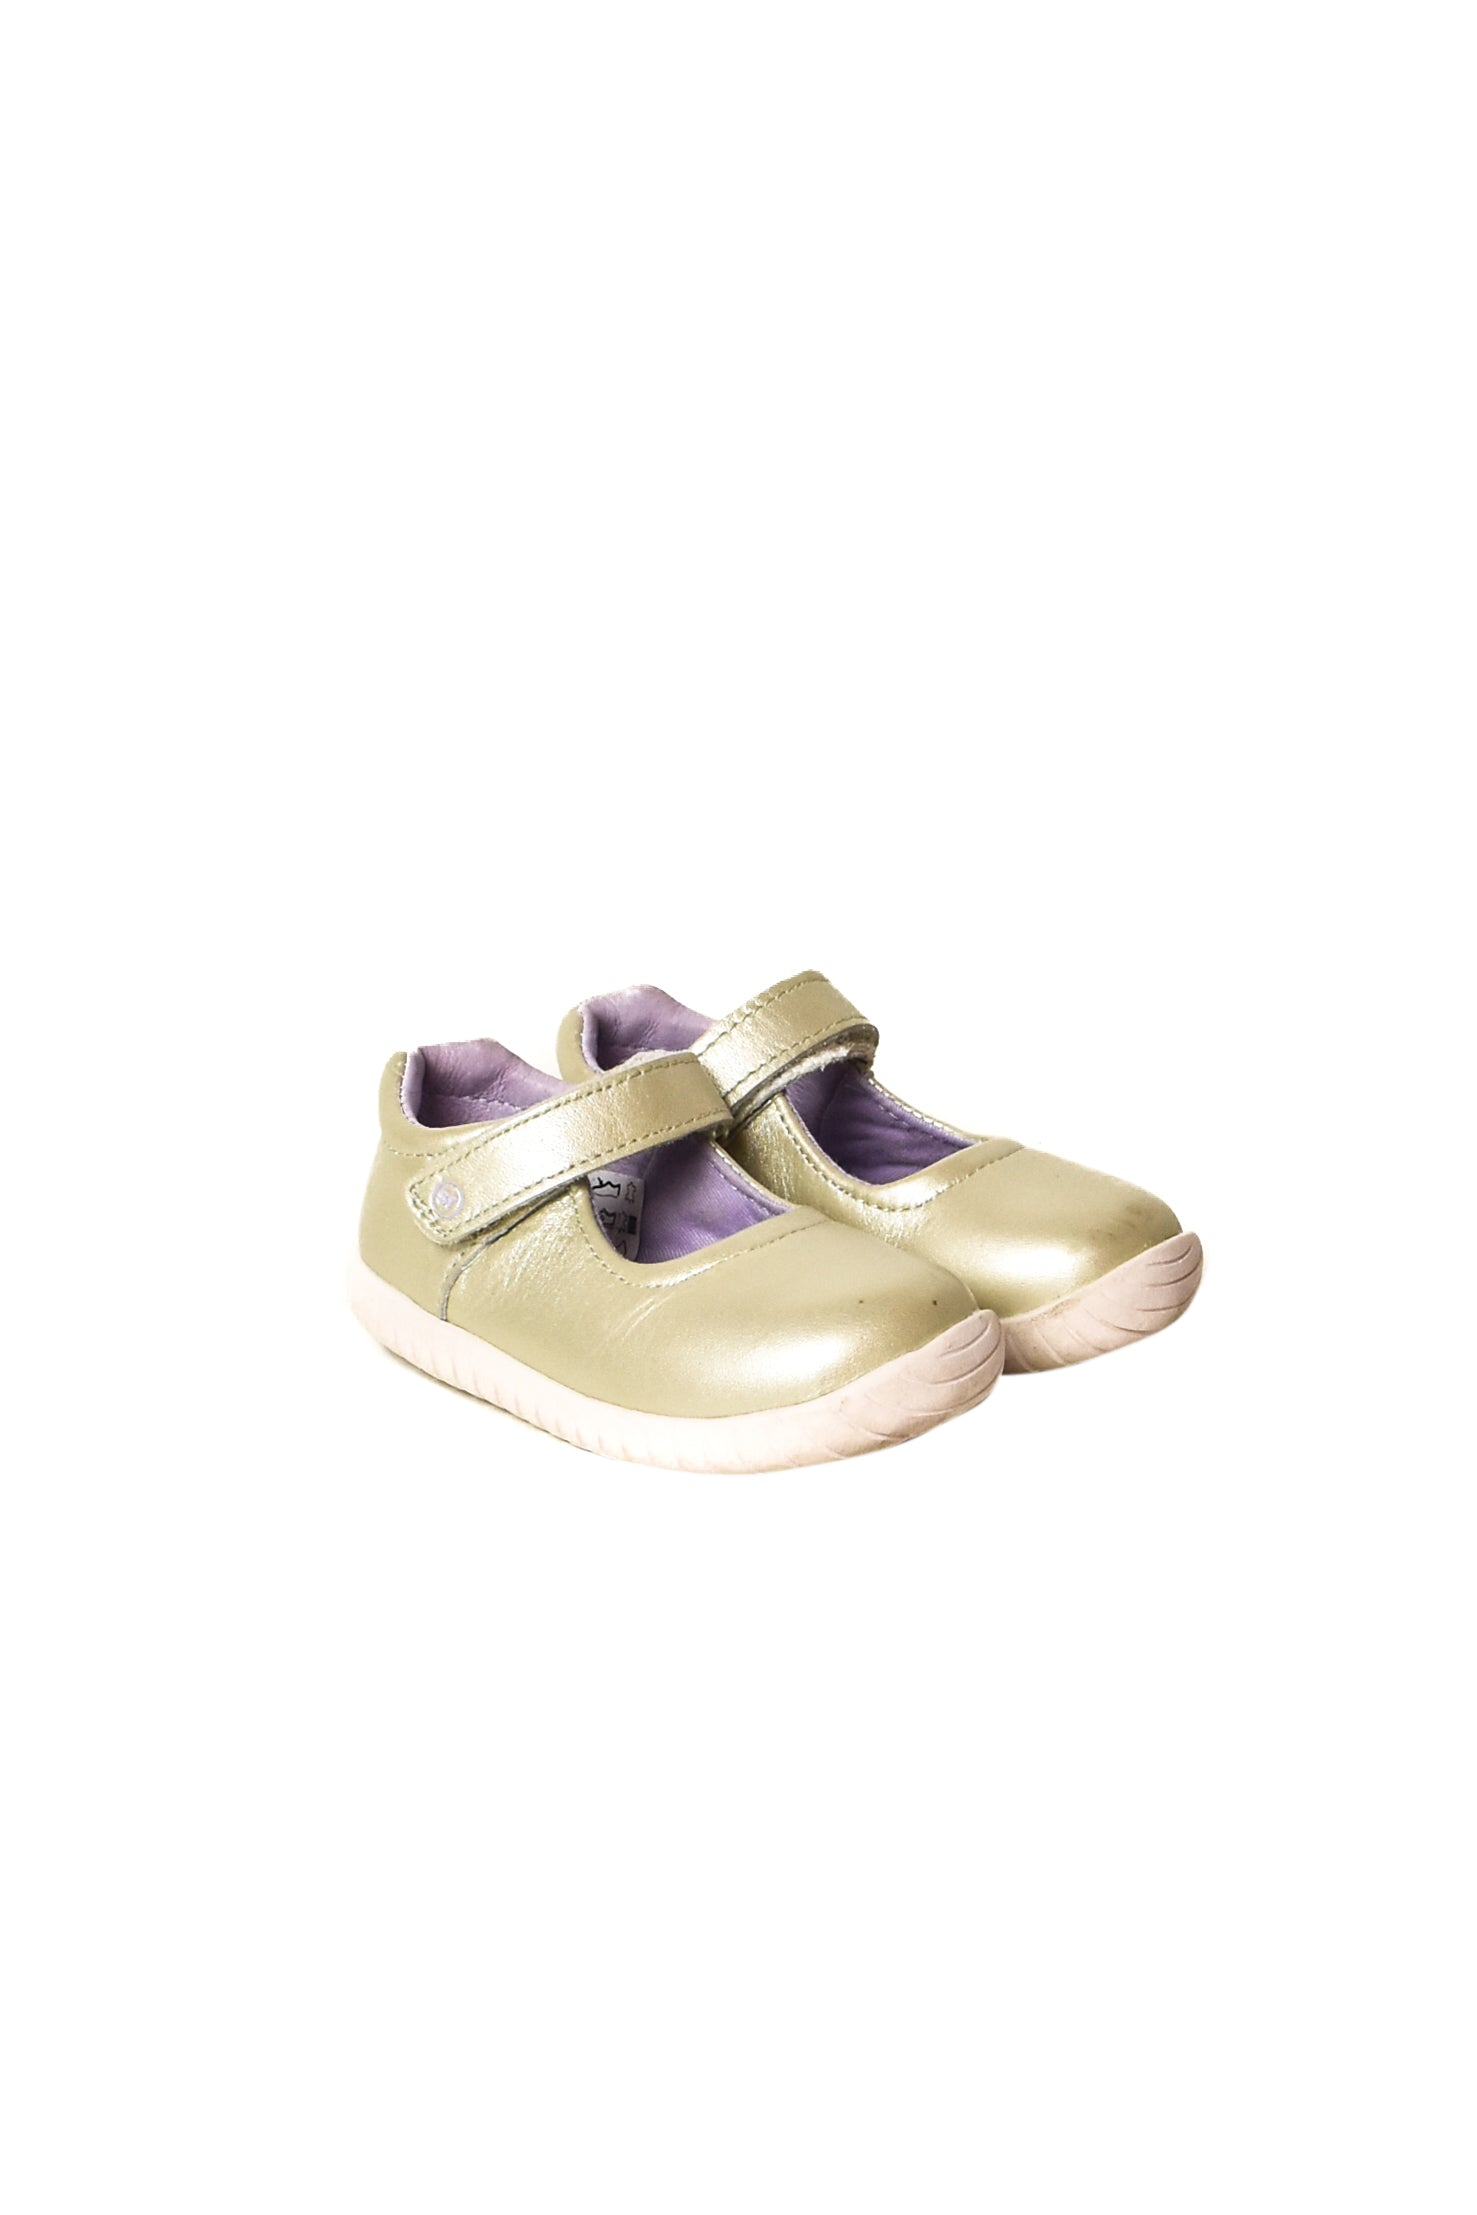 10012736 Stride Rite Baby ~ Shoes 18-24M (EU 22.5) at Retykle